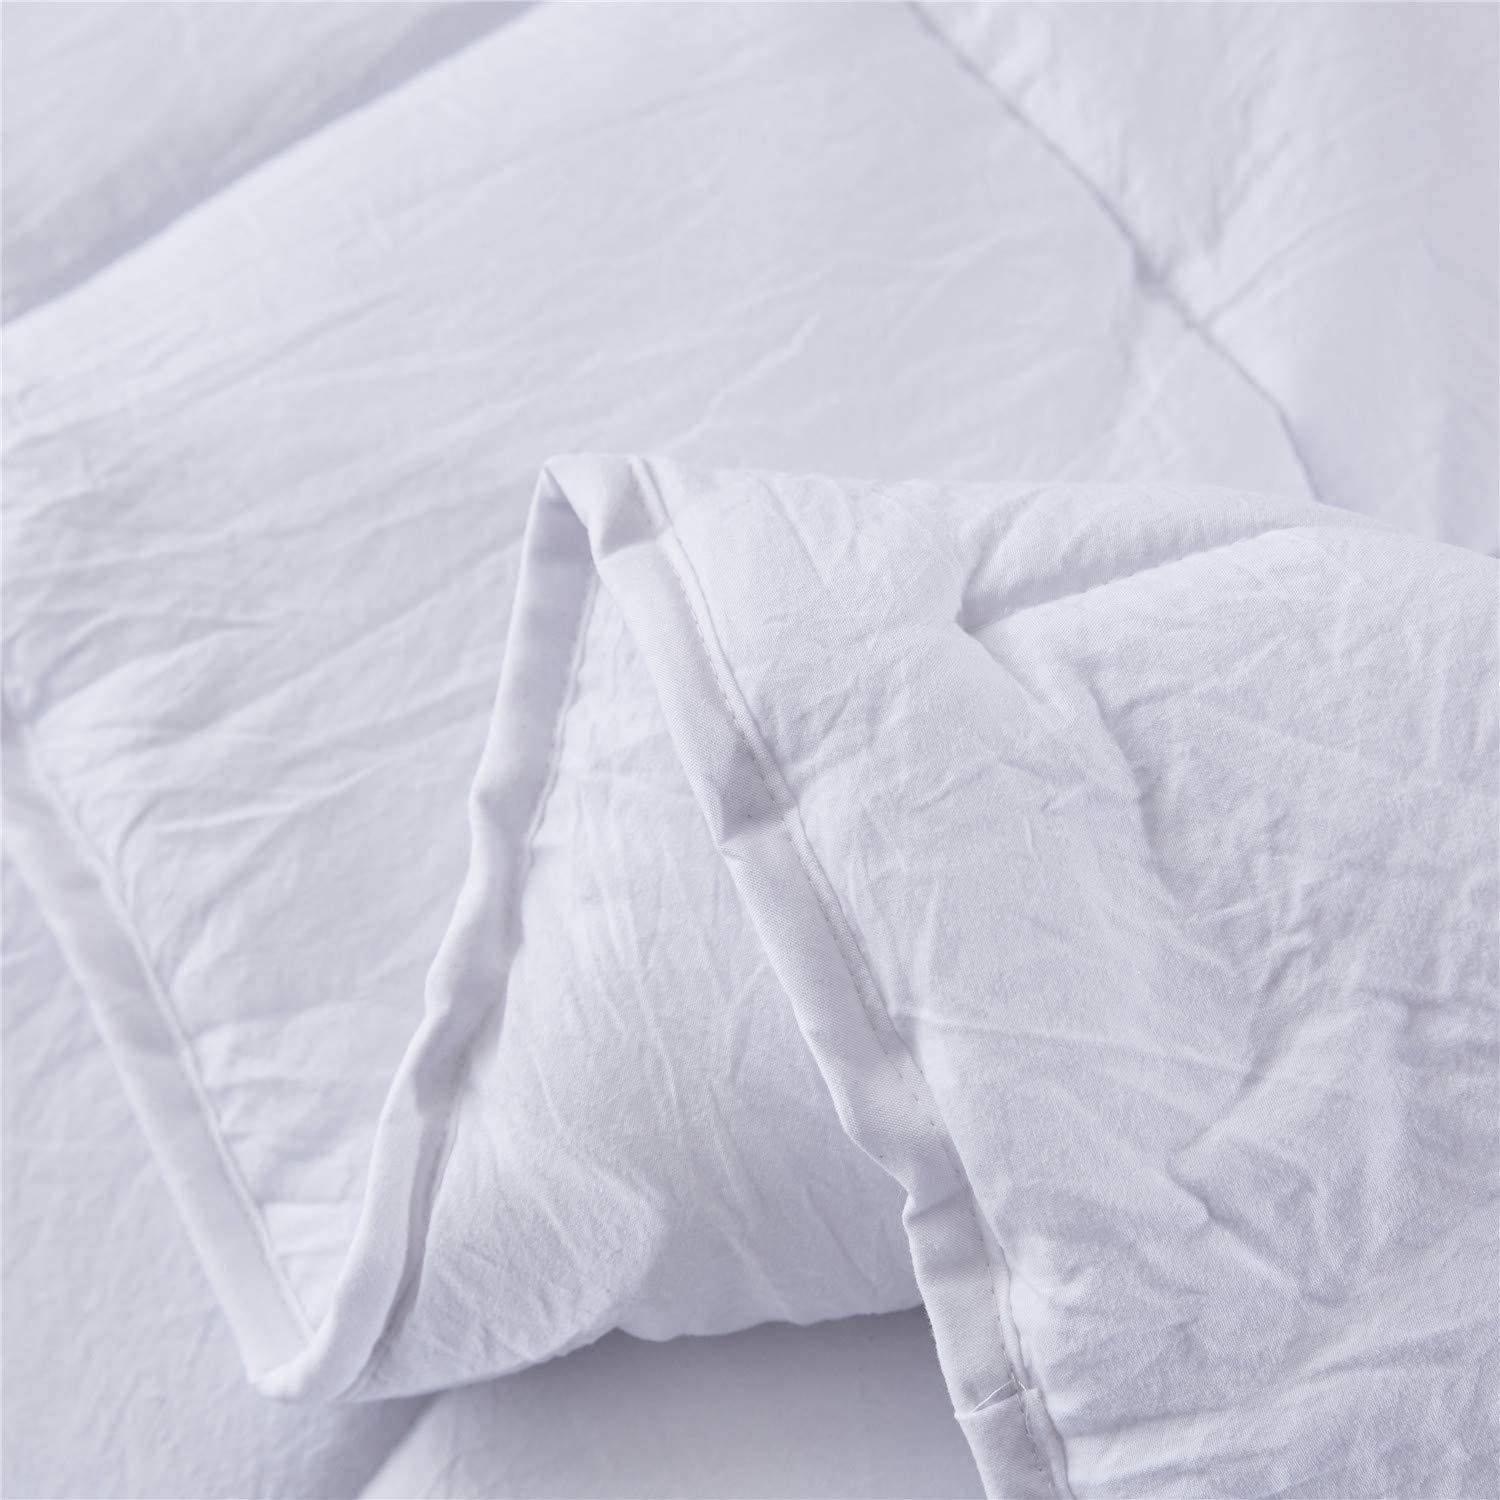 Pure White Duvet Comforter with 2 Pillow Shams Lightweight for All Season HIG Pre Washed Down Alternative Comforter Set Twin Box Stitched with 4 Corner Tabs Reversible Shabby Chic Quilt Desgin